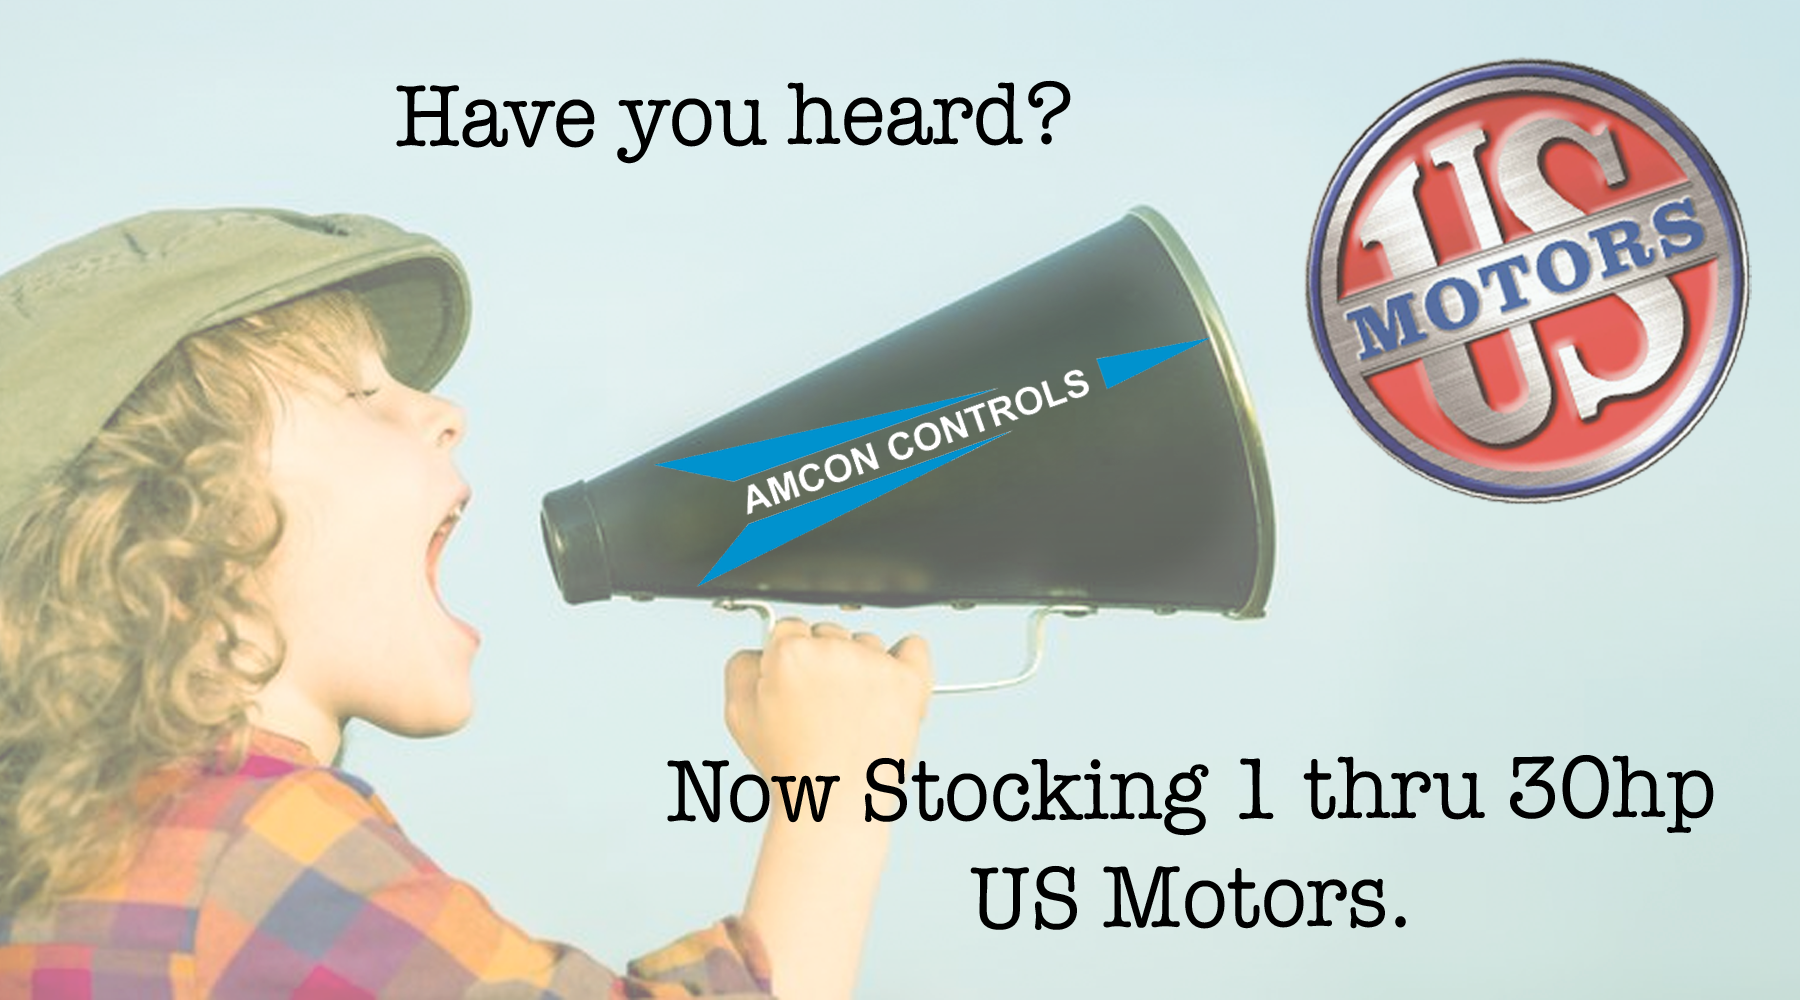 NowStockingUSMotors